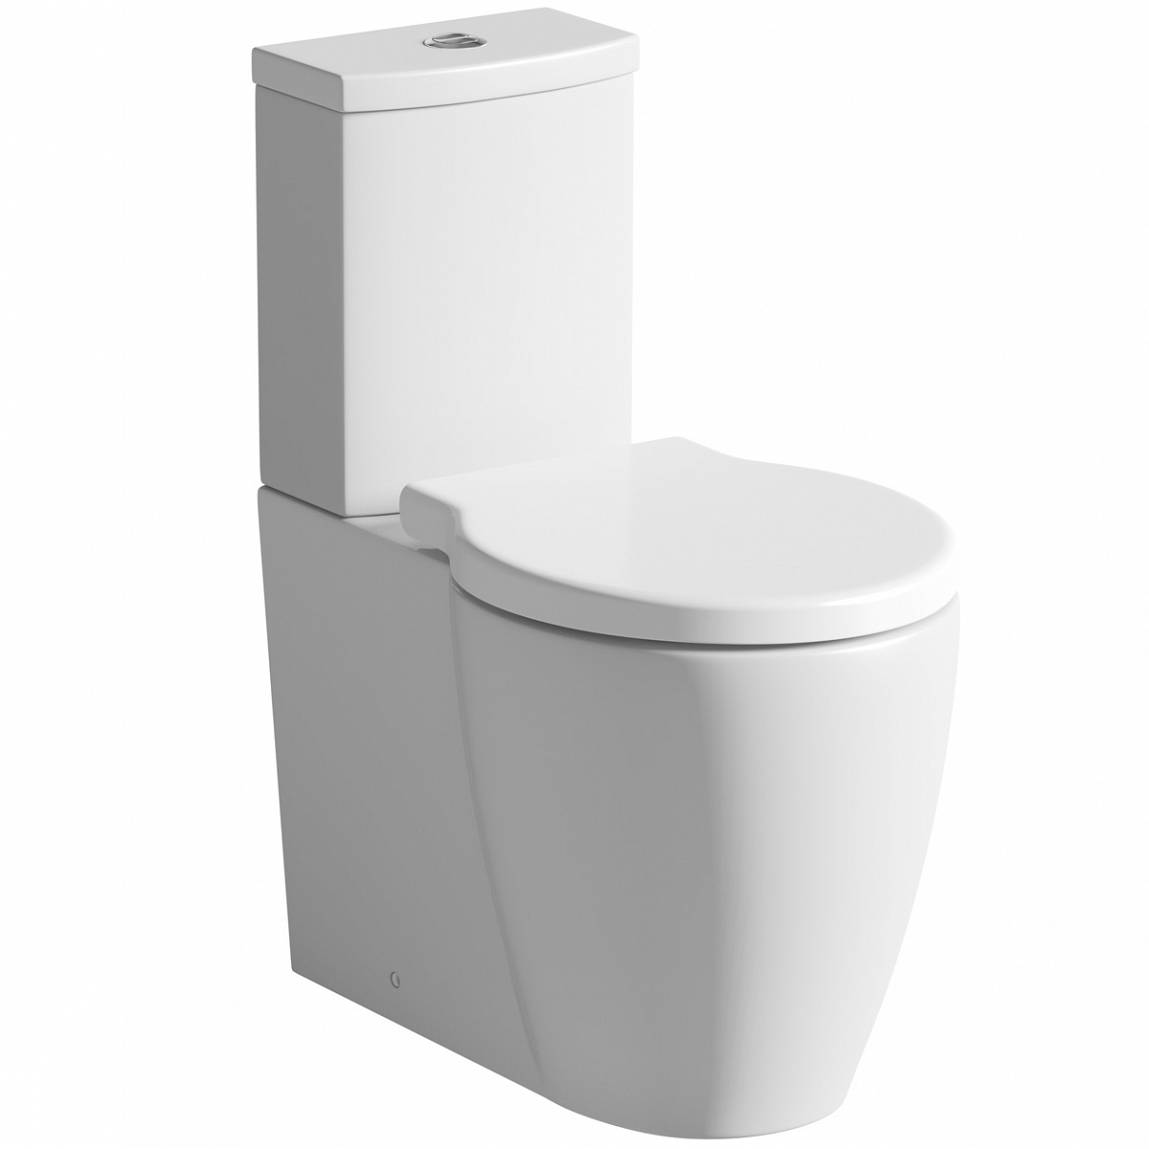 Image of Maine Close Coupled Toilet inc Luxury Soft Close Seat